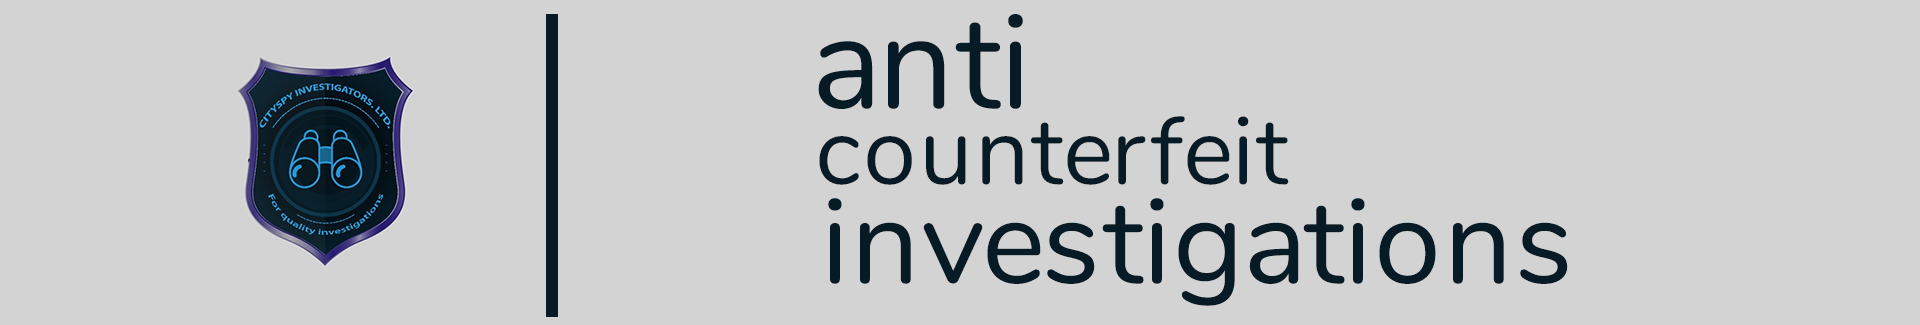 anti counterfeit